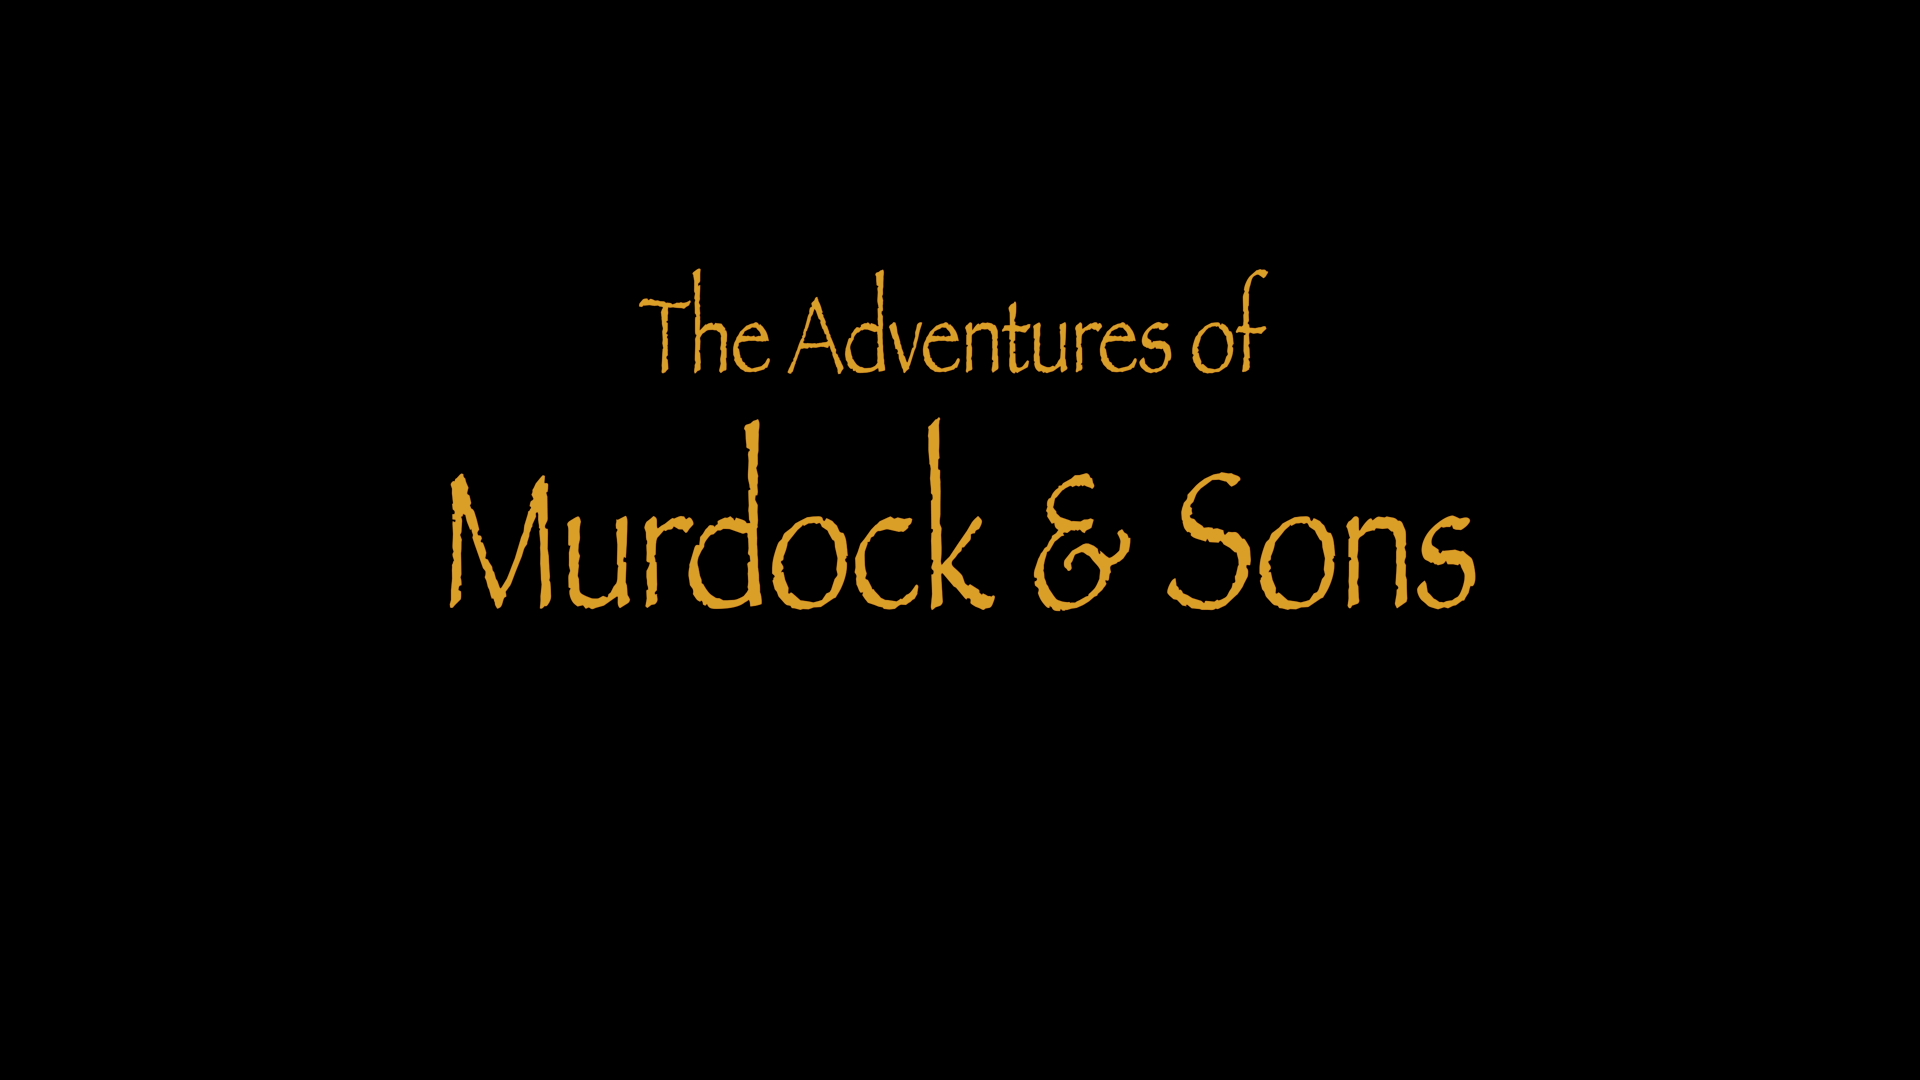 This is the title card from the film THE ADVENTURES OF MURDOCK & SONS.